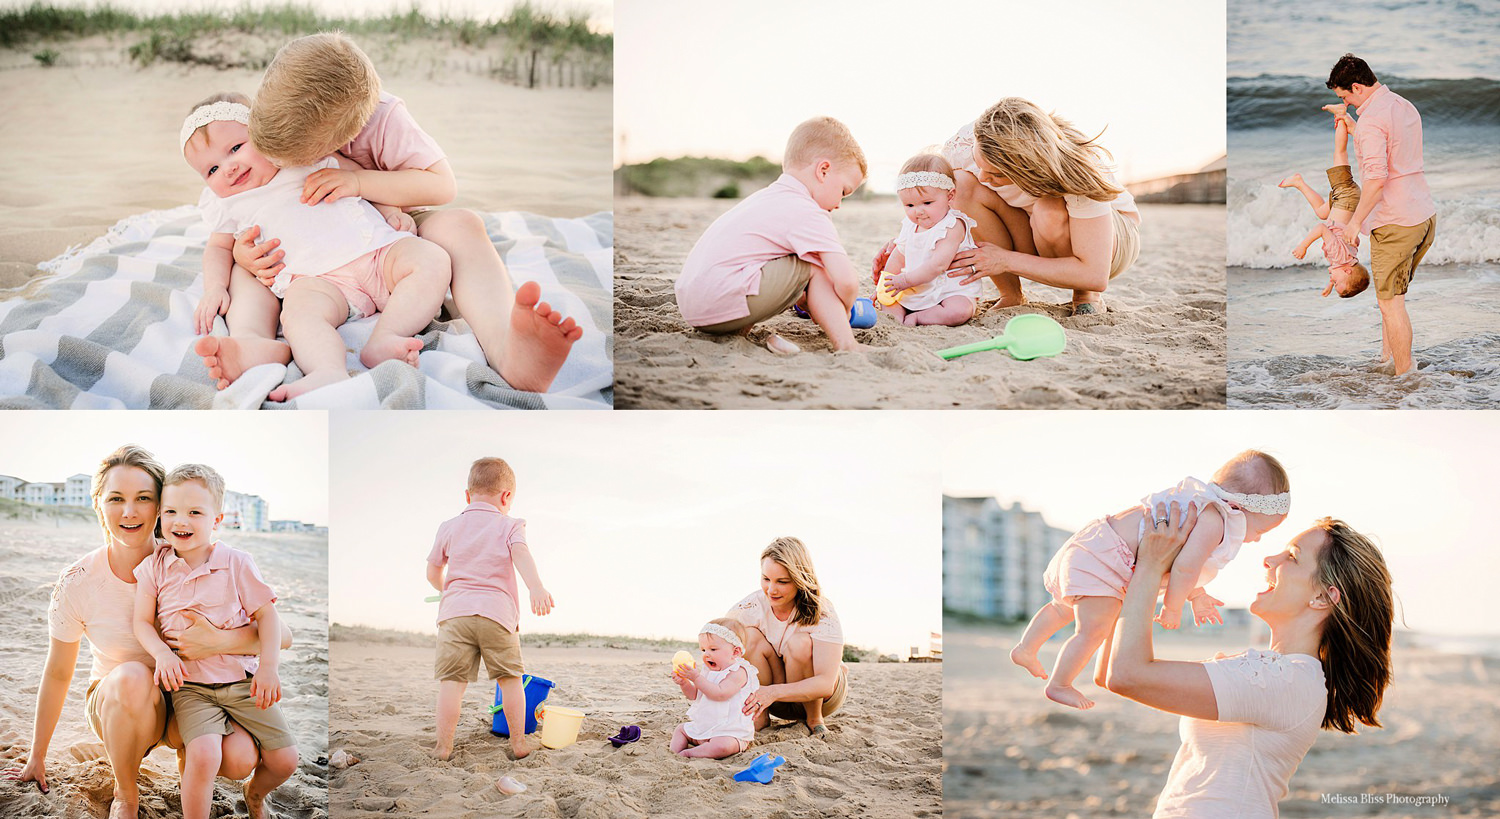 melissa-bliss-photography-captures-candid-family-photos-on-sandbridge-beach-virginia-beach-photographers.jpg